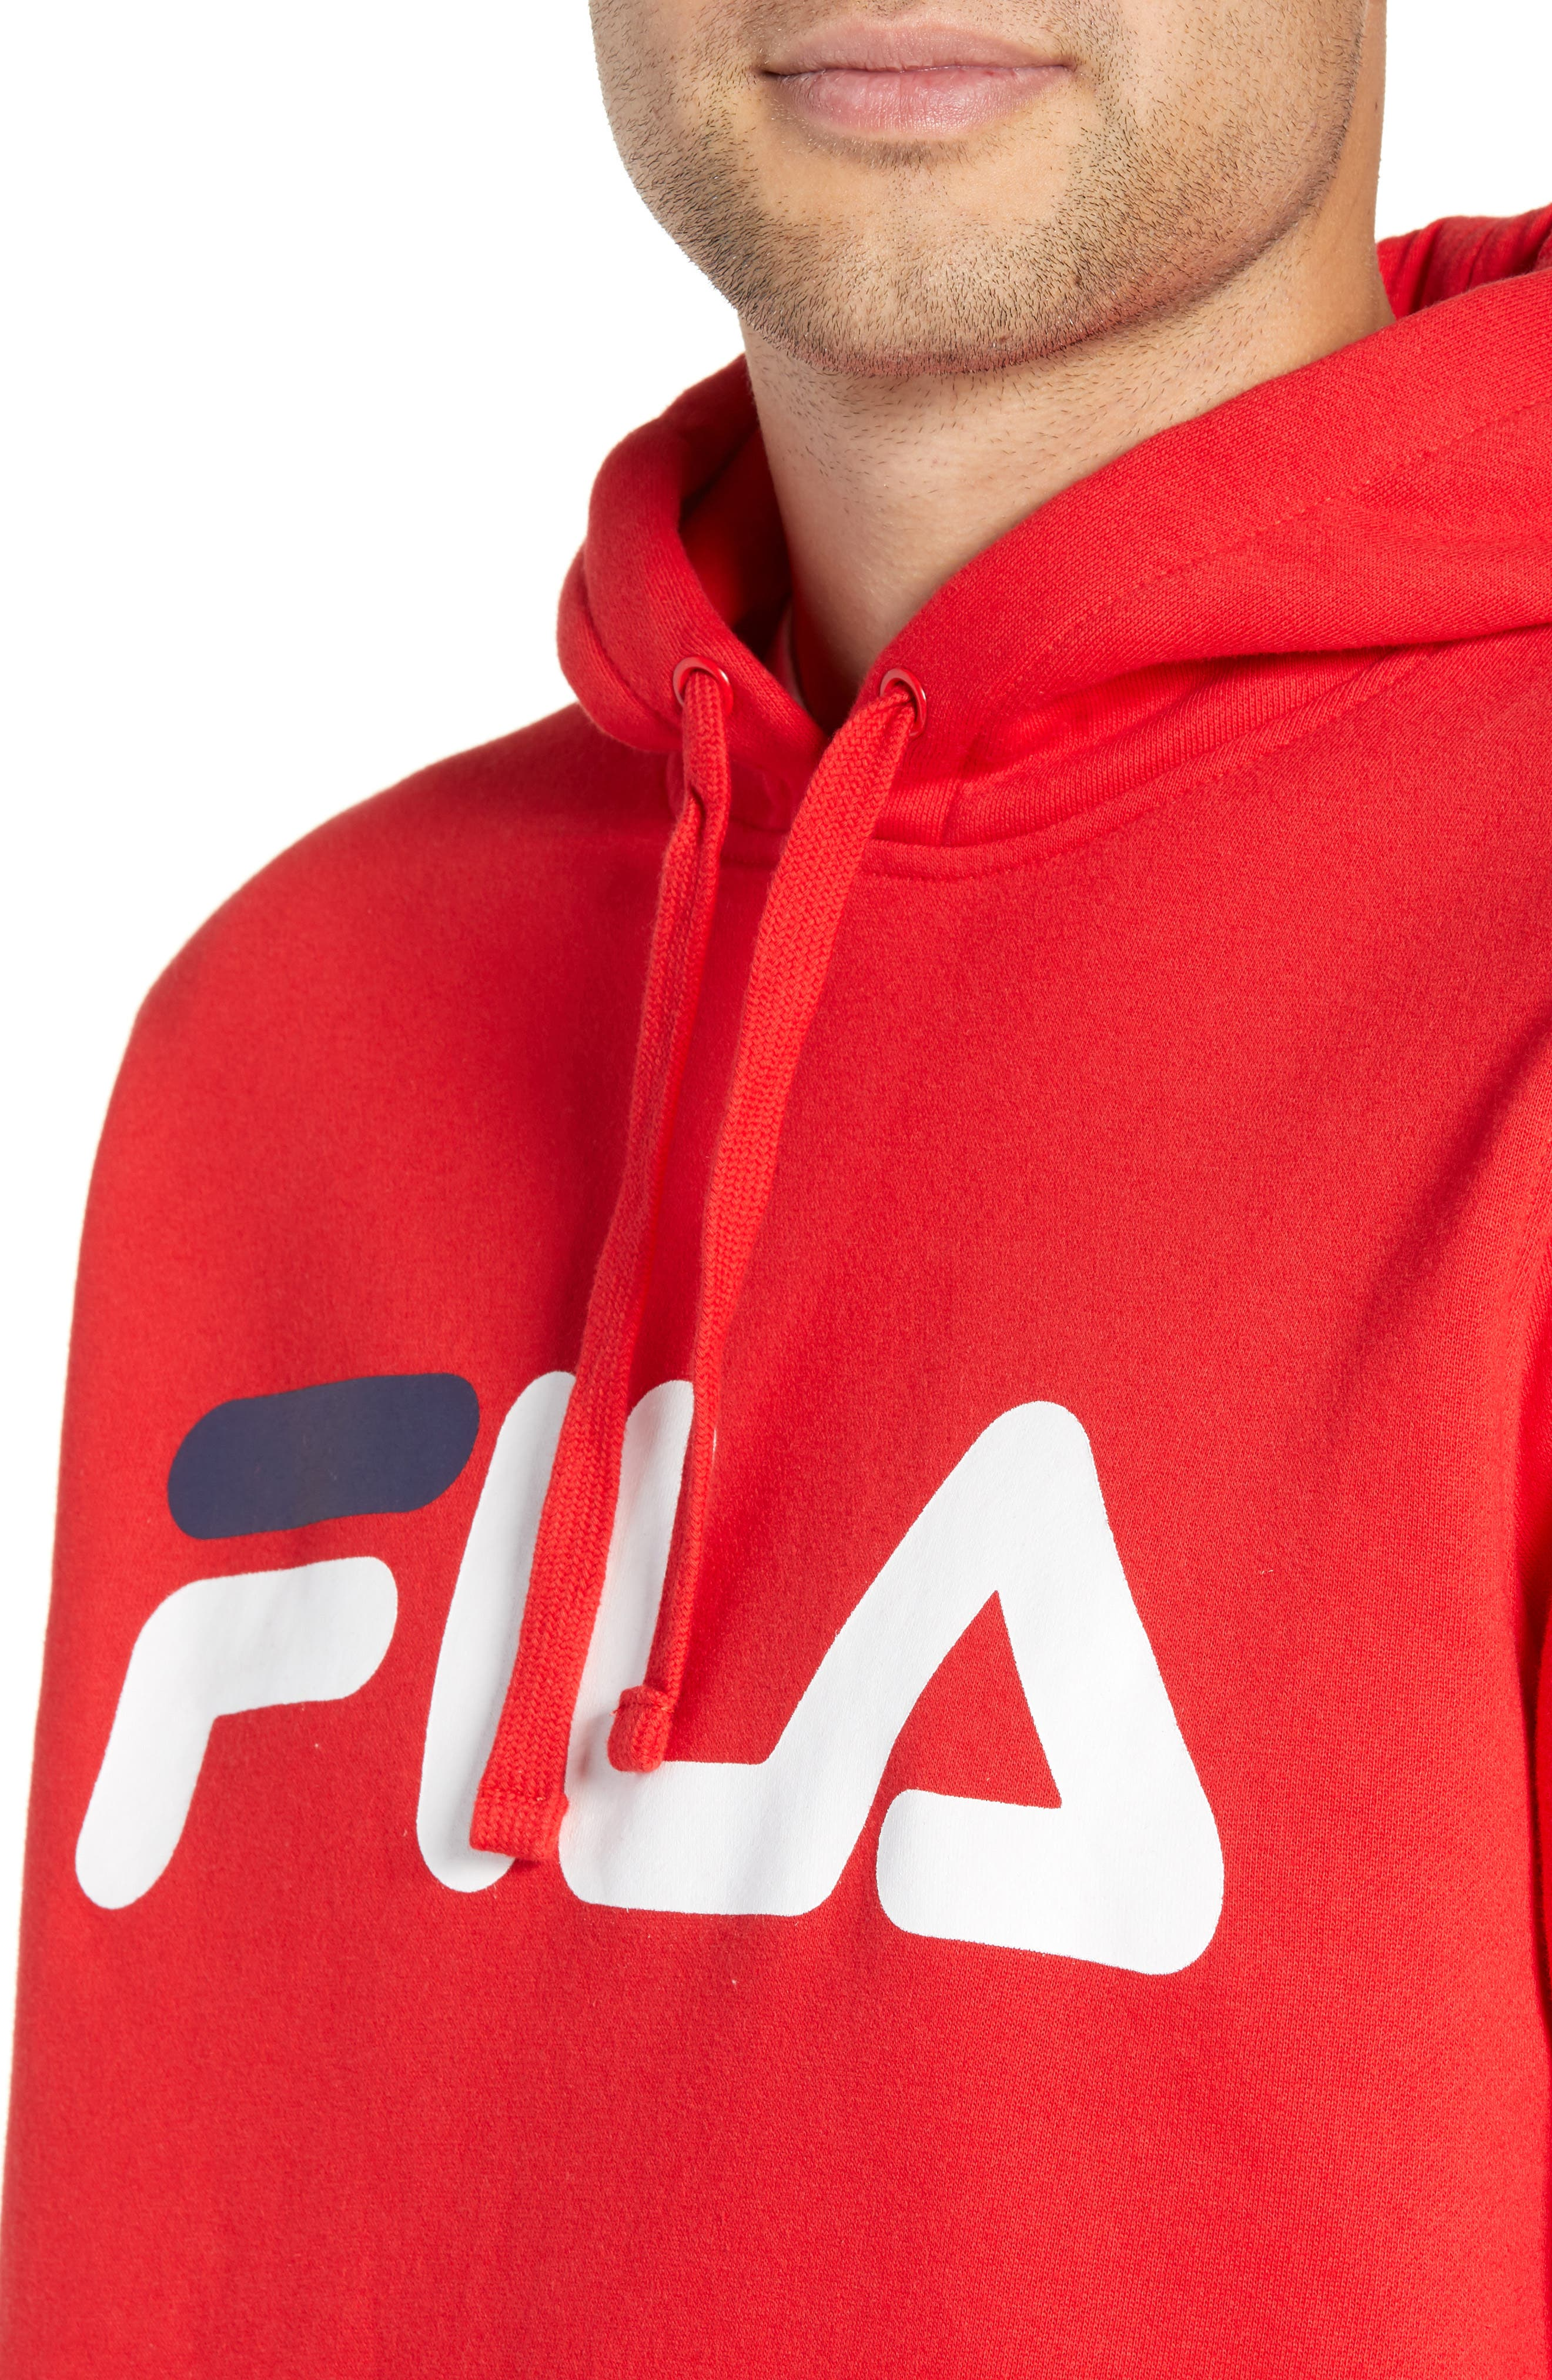 Logo Graphic Hooded Sweatshirt,                             Alternate thumbnail 4, color,                             CHINESE RED/ WHITE/ NAVY